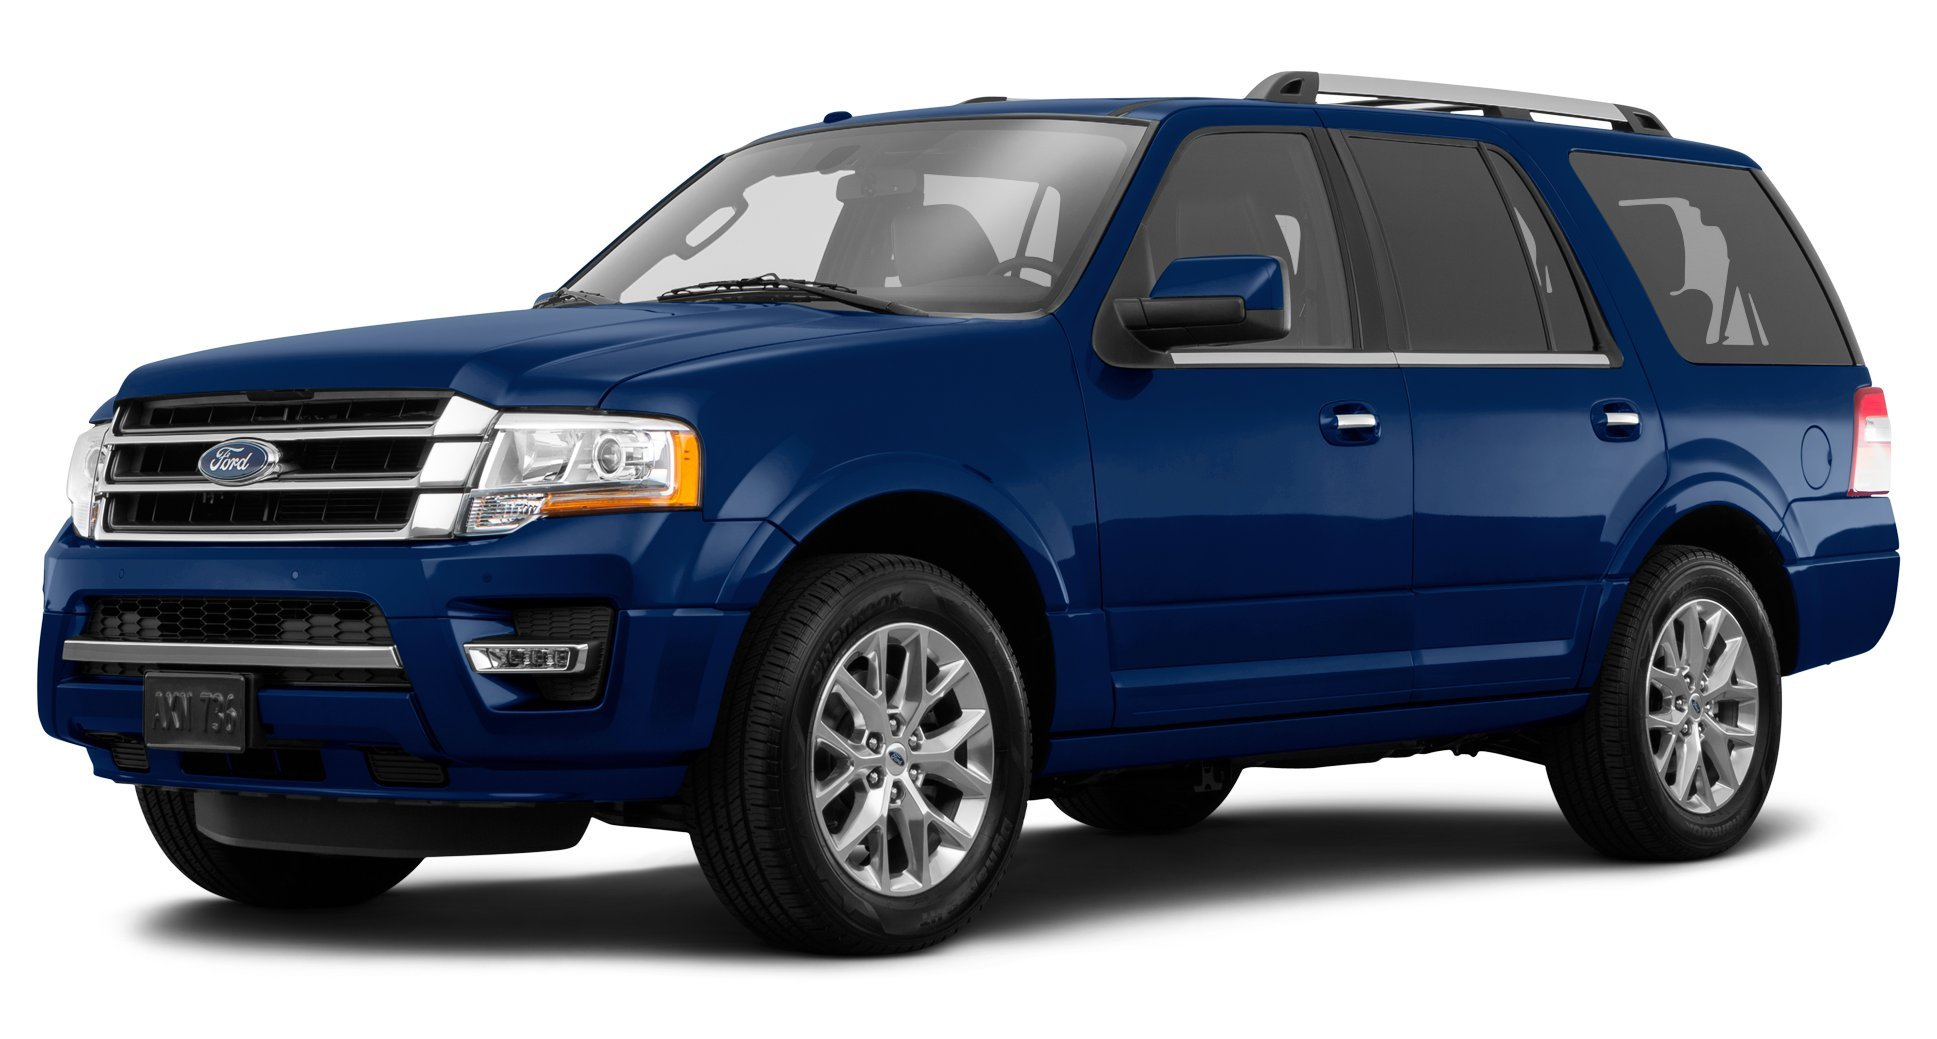 2017 ford expedition reviews images and specs vehicles. Black Bedroom Furniture Sets. Home Design Ideas